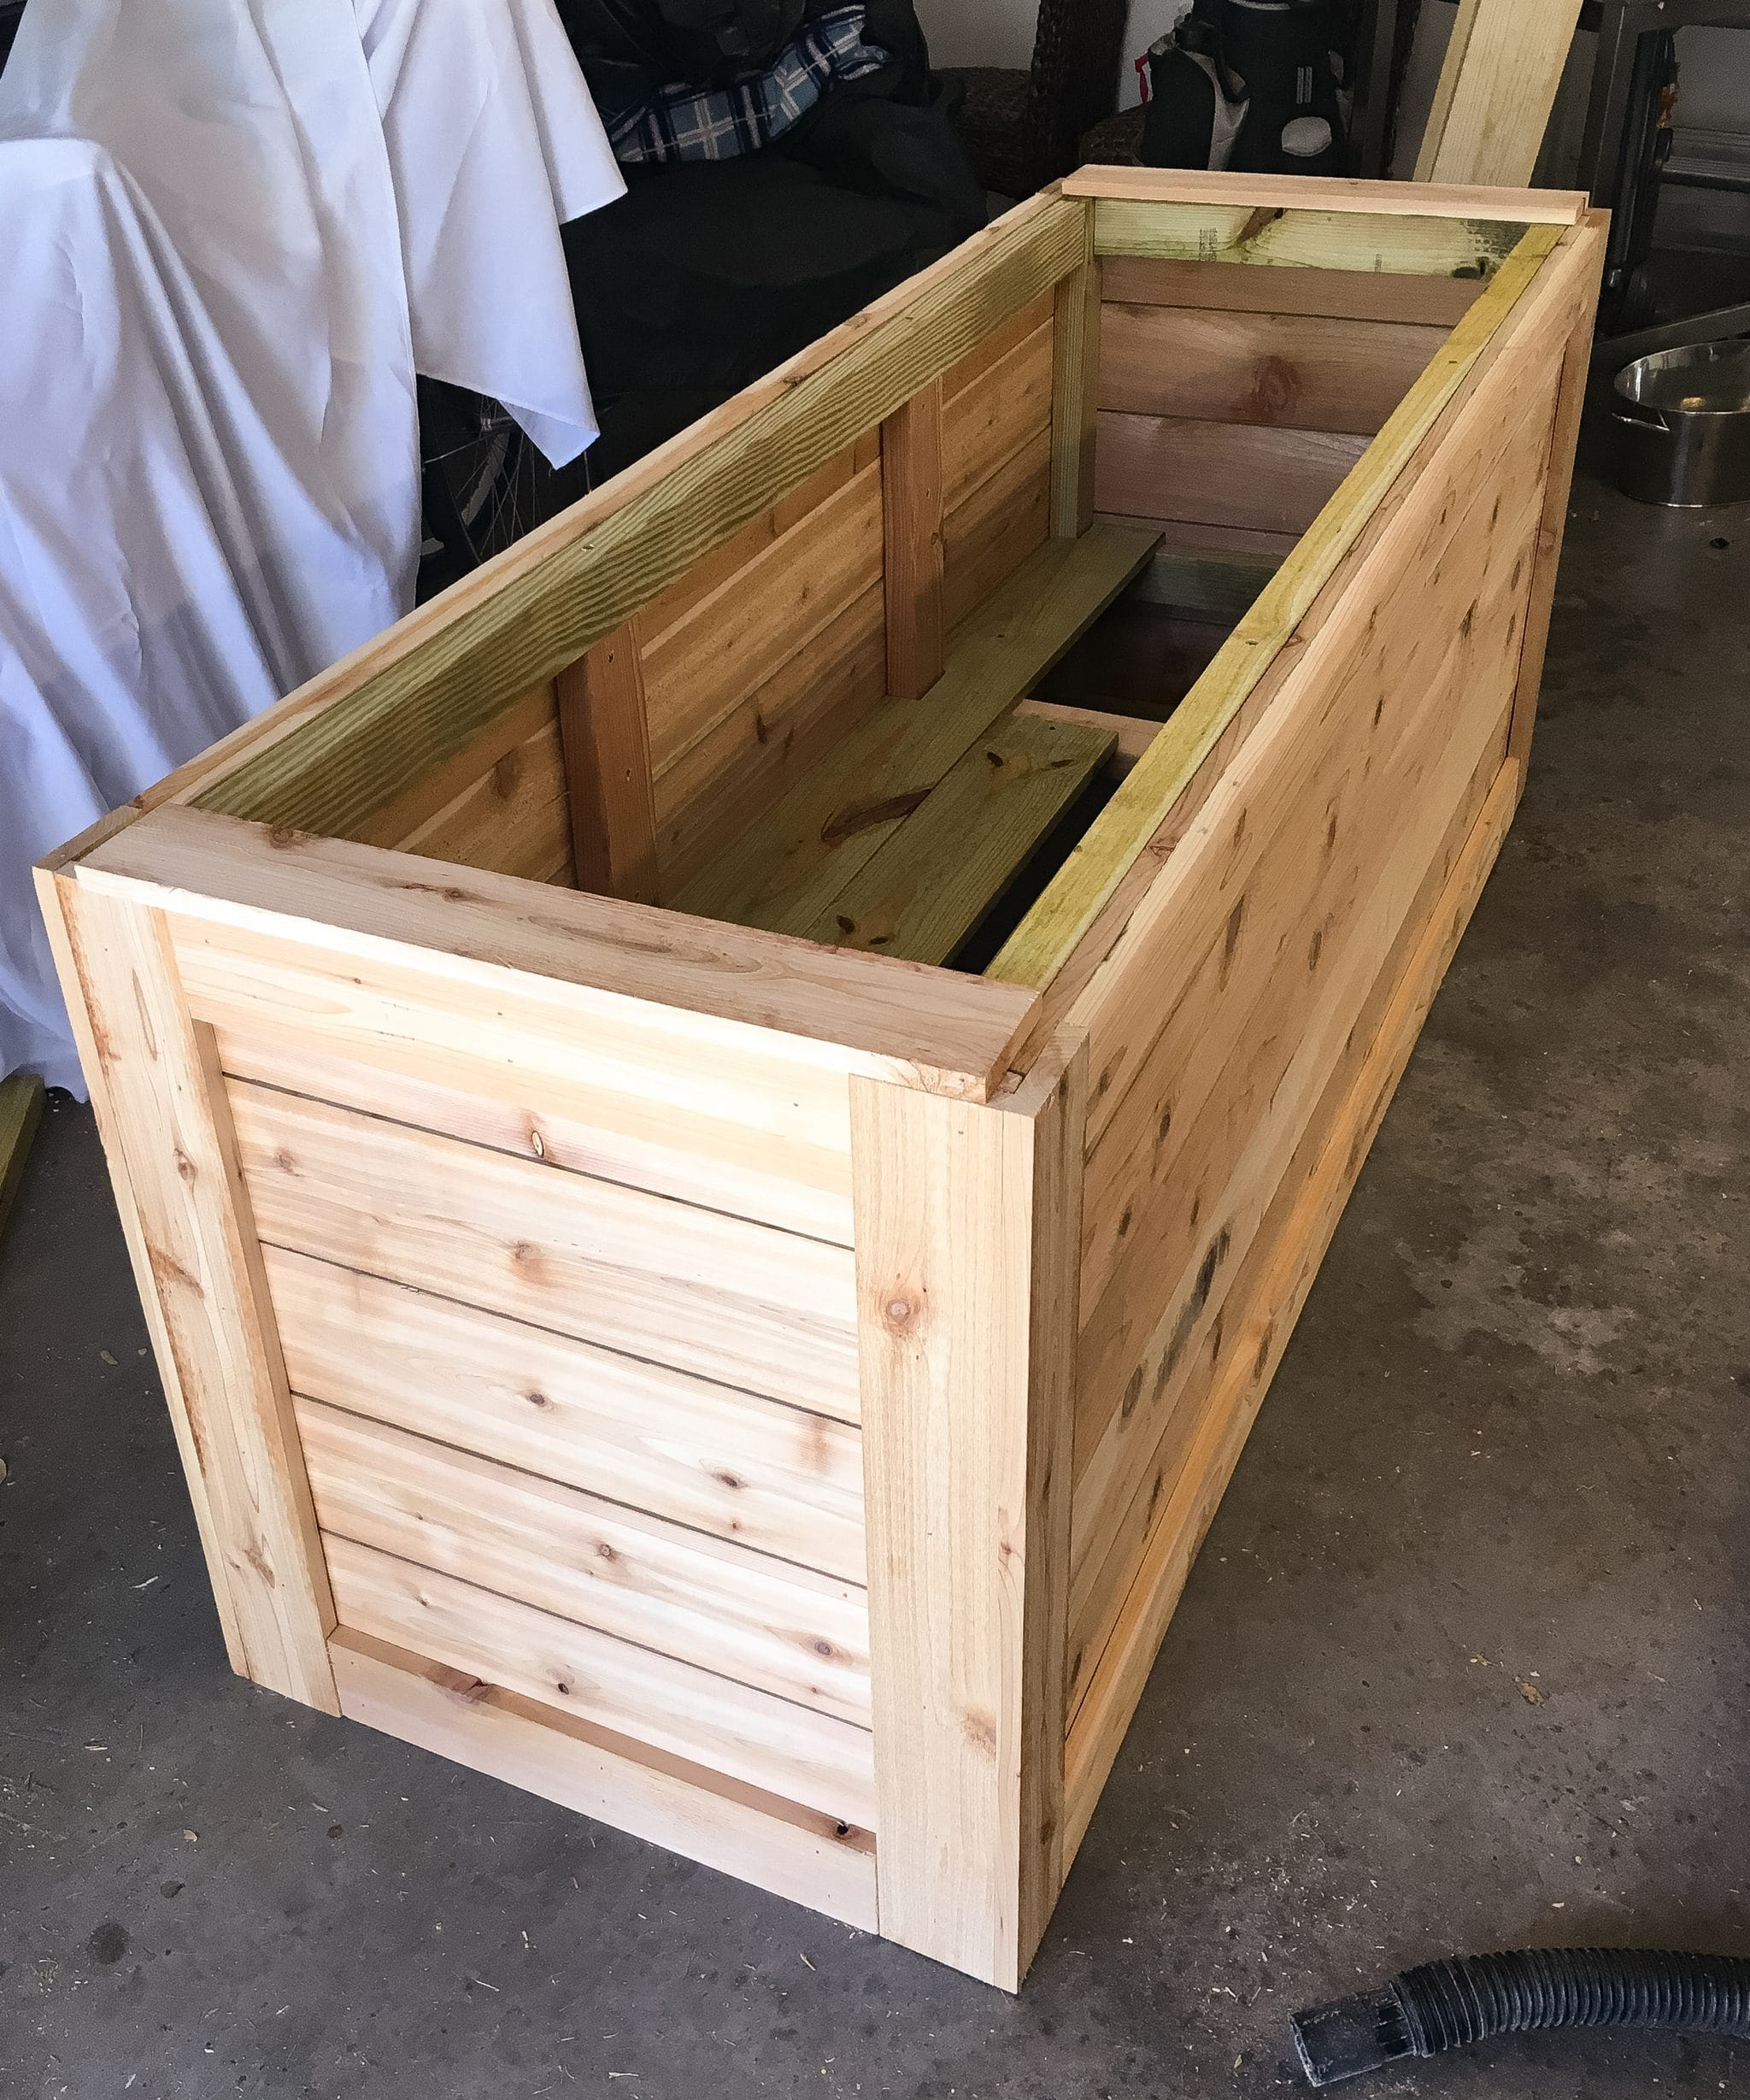 Box à Planter Backyard Diy Series Part Iiii Cedar Wood Planter Box